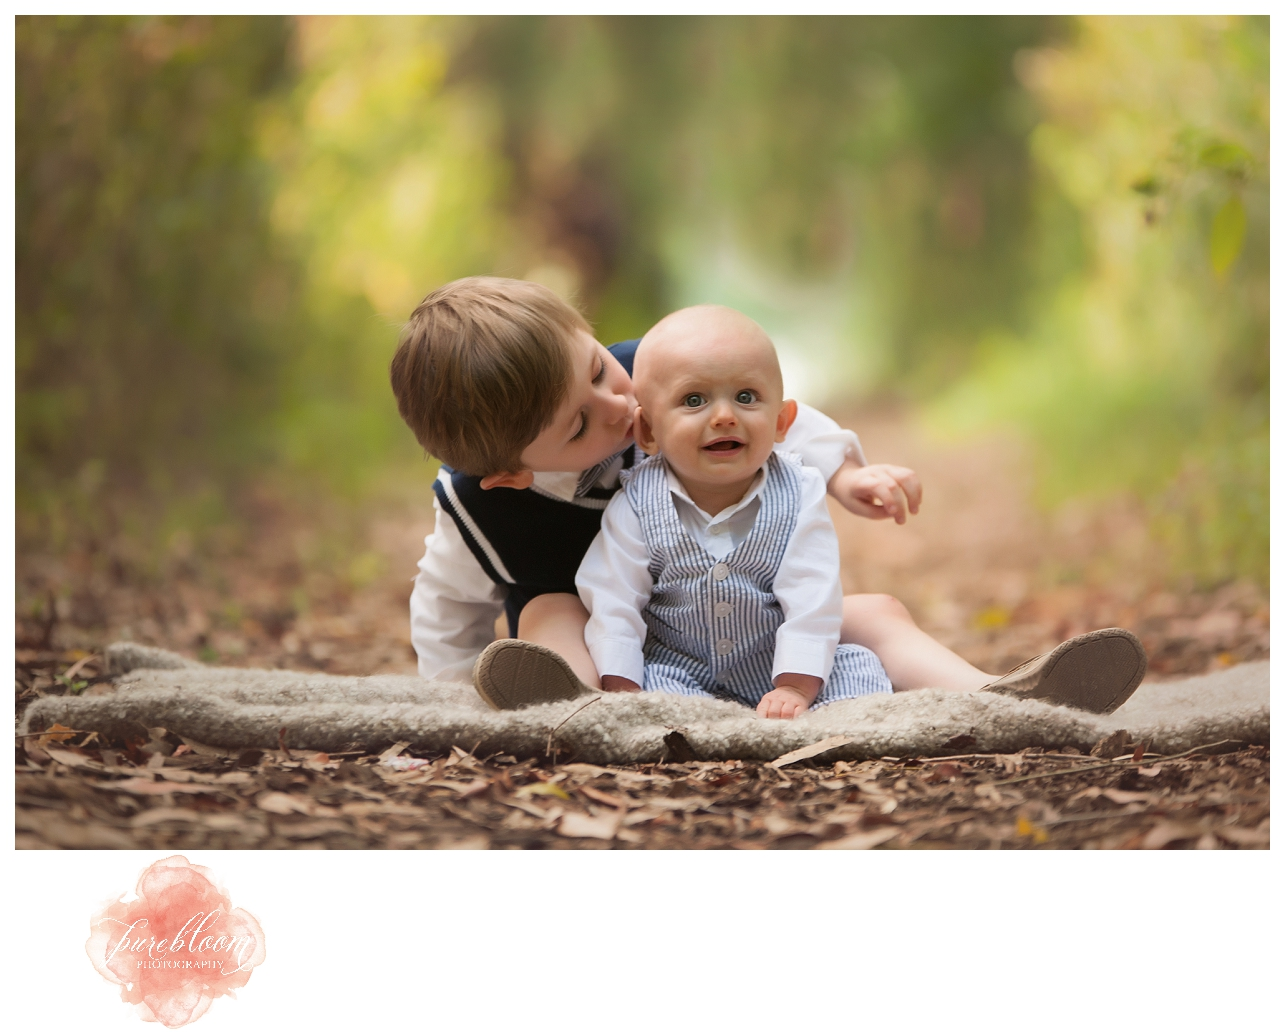 Tampa Children's Photographer | Pure Bloom Photography | Spring Session